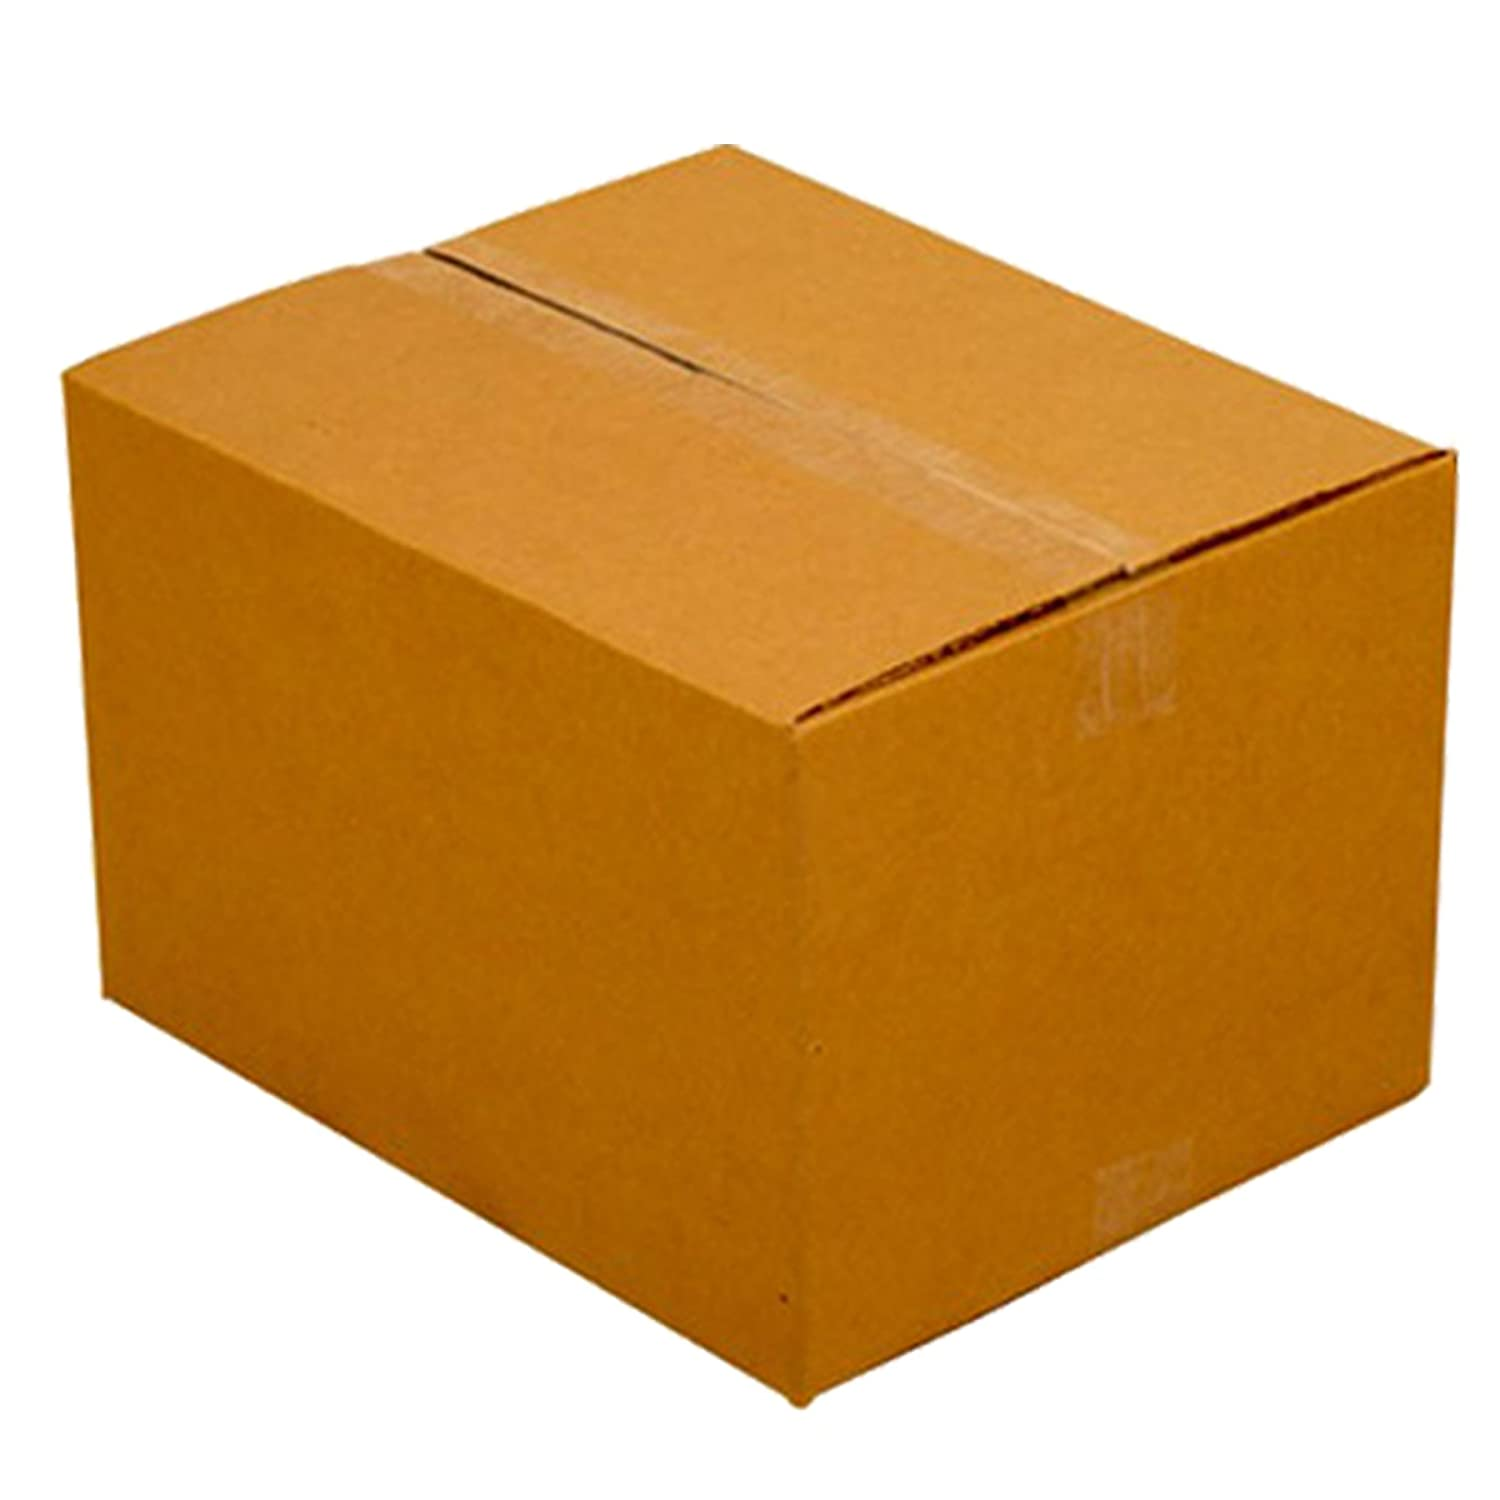 amazon com uboxes moving boxes medium 18x14x12 inches pack of